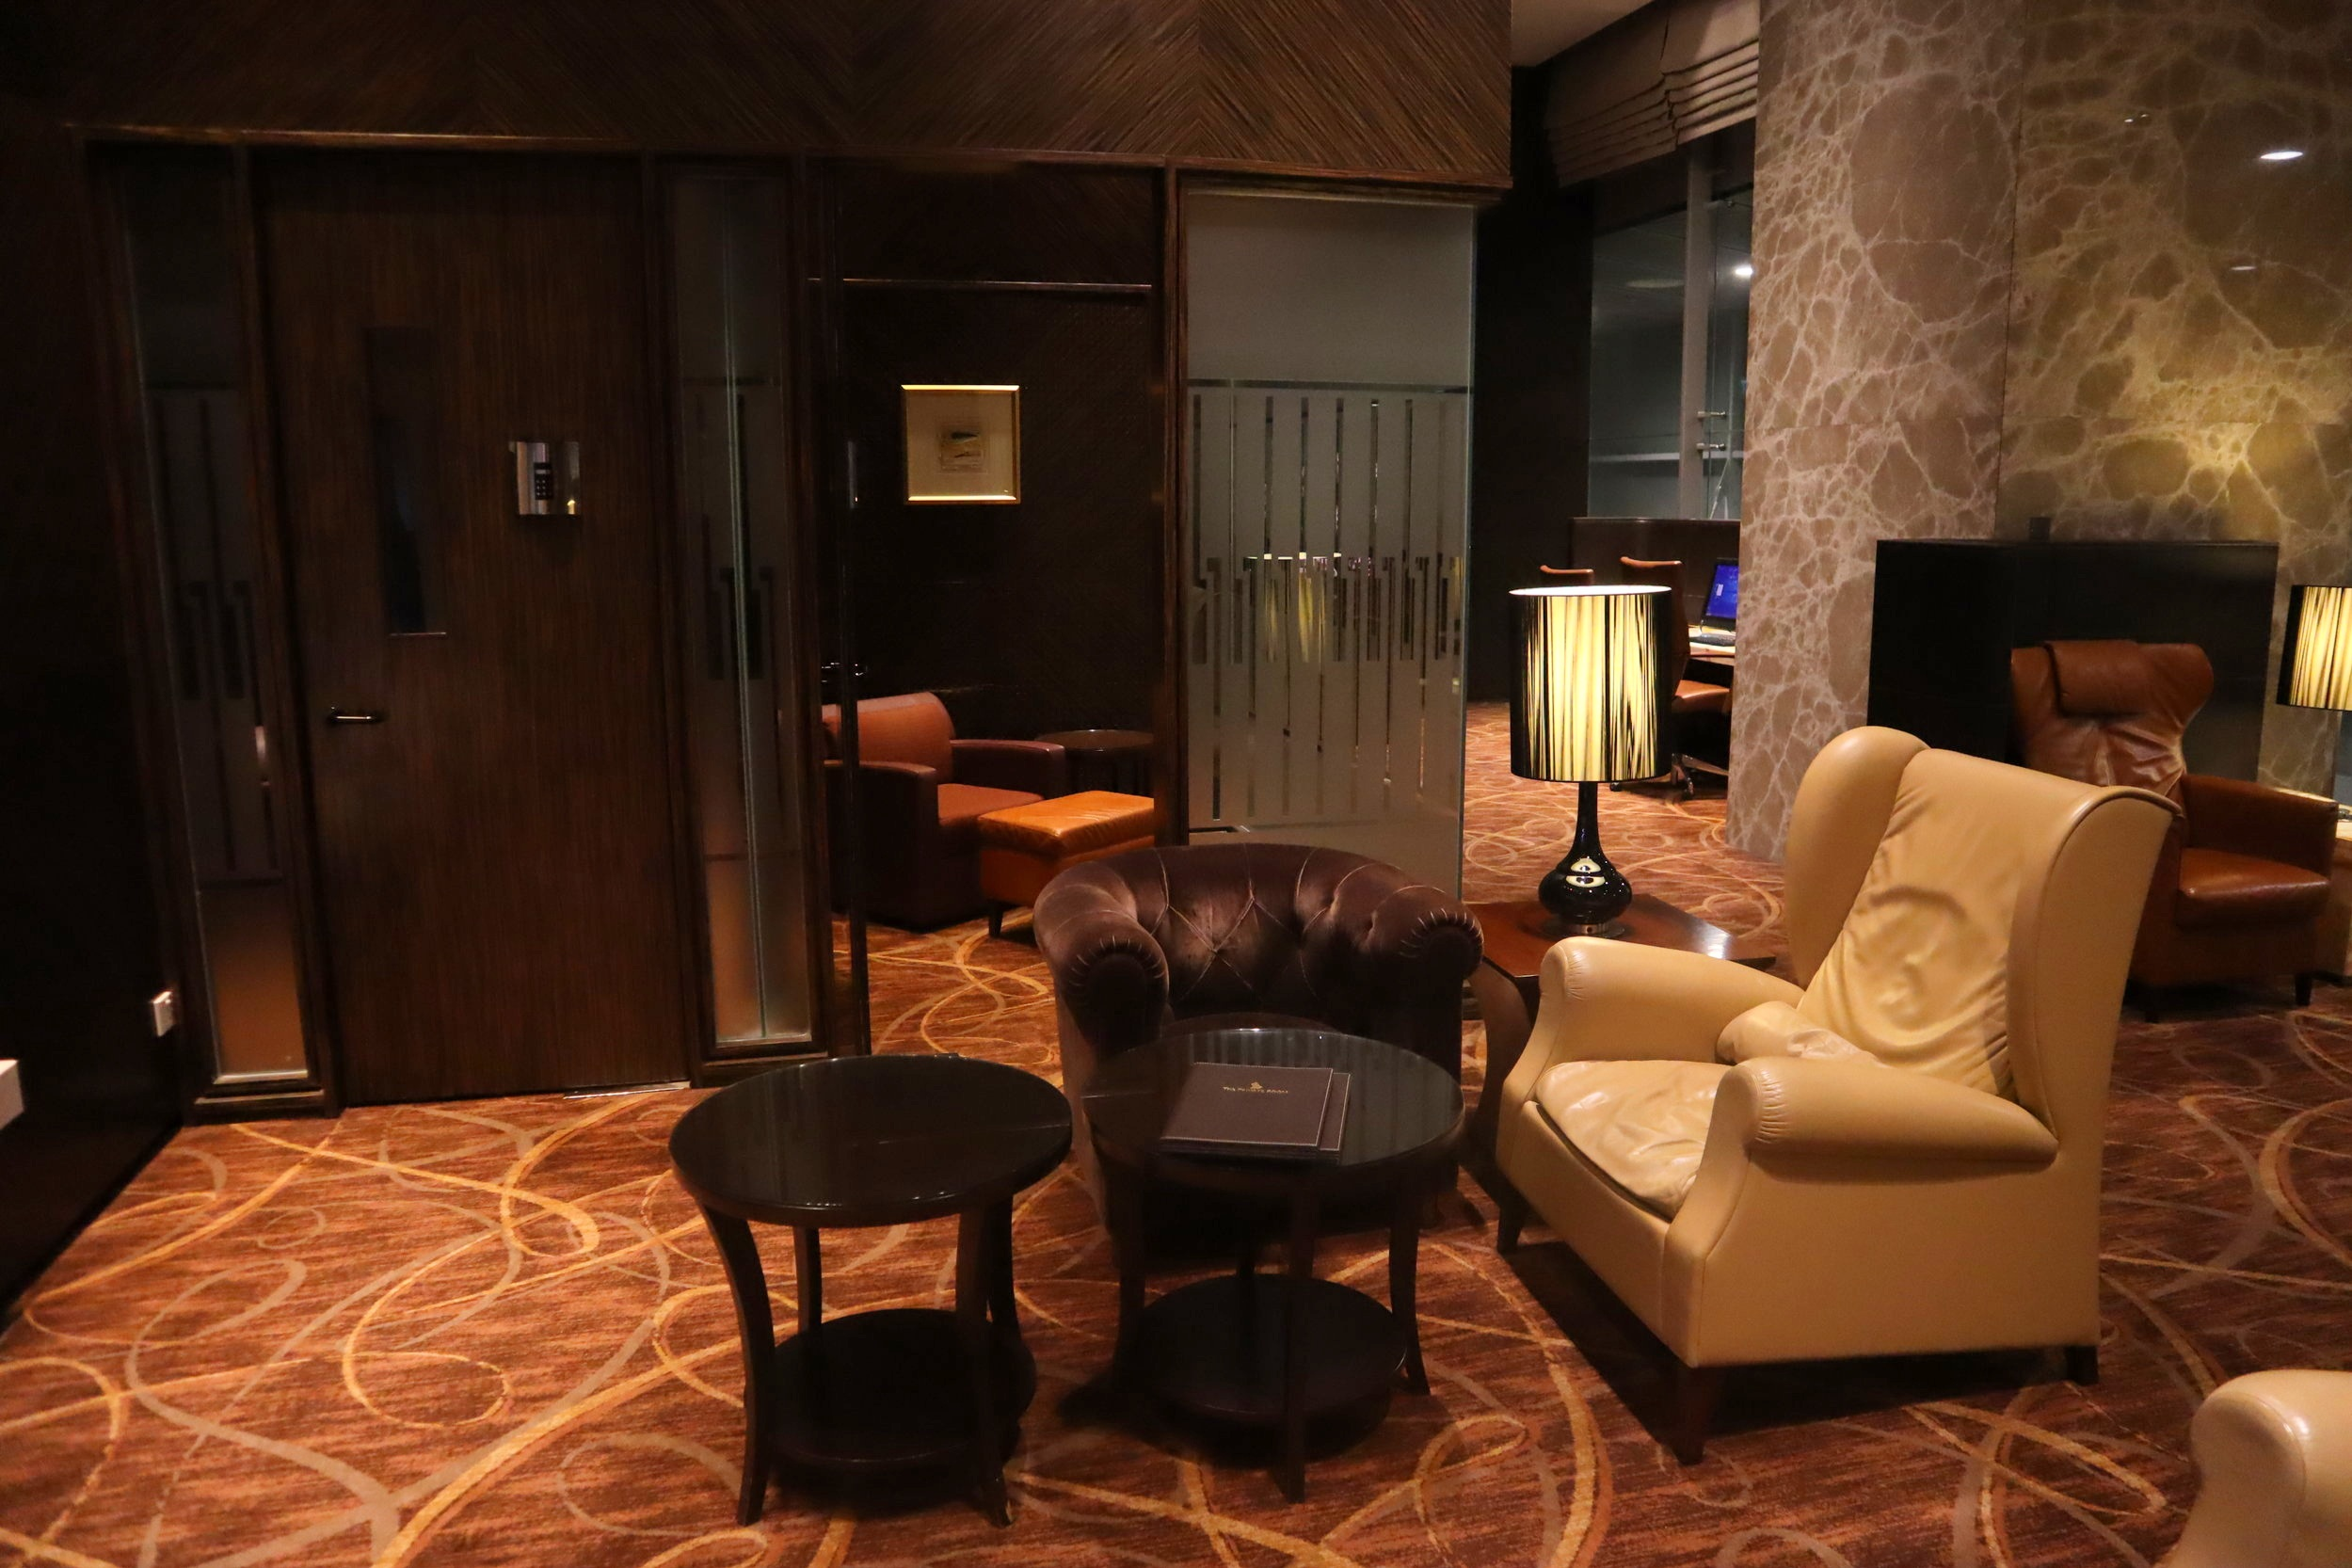 The Private Room by Singapore Airlines – Individual rooms